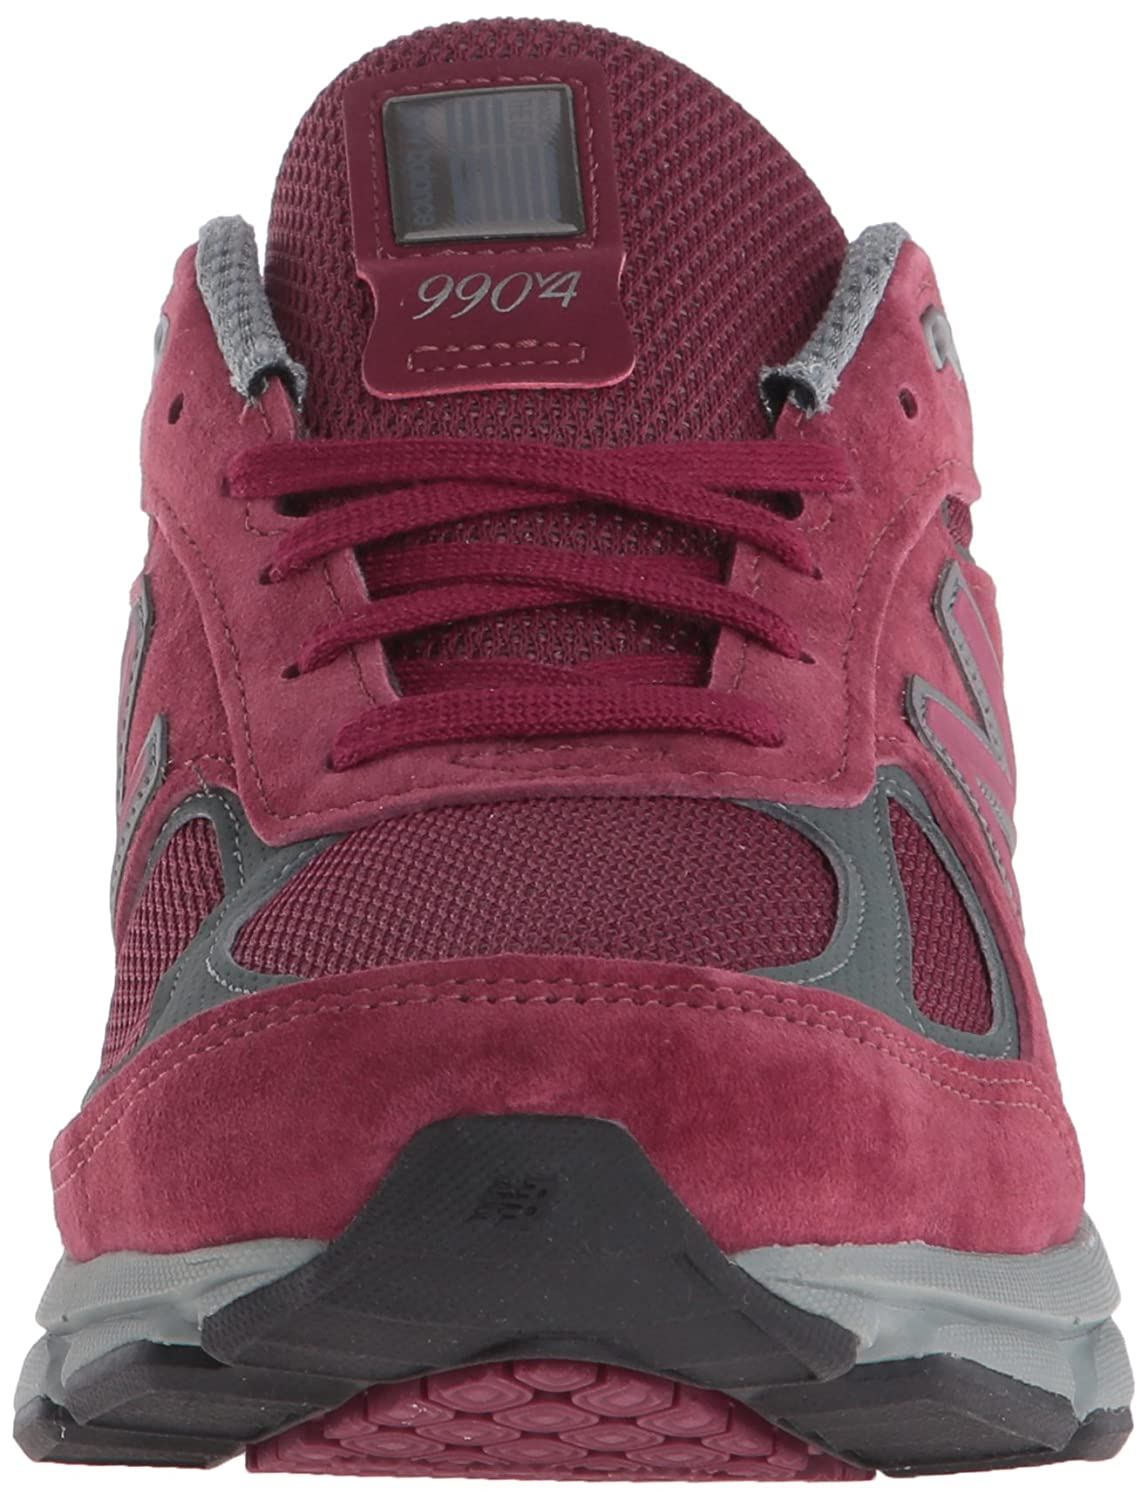 New-Balance-990-990v4-Classicc-Retro-Fashion-Sneaker-Made-in-USA thumbnail 40